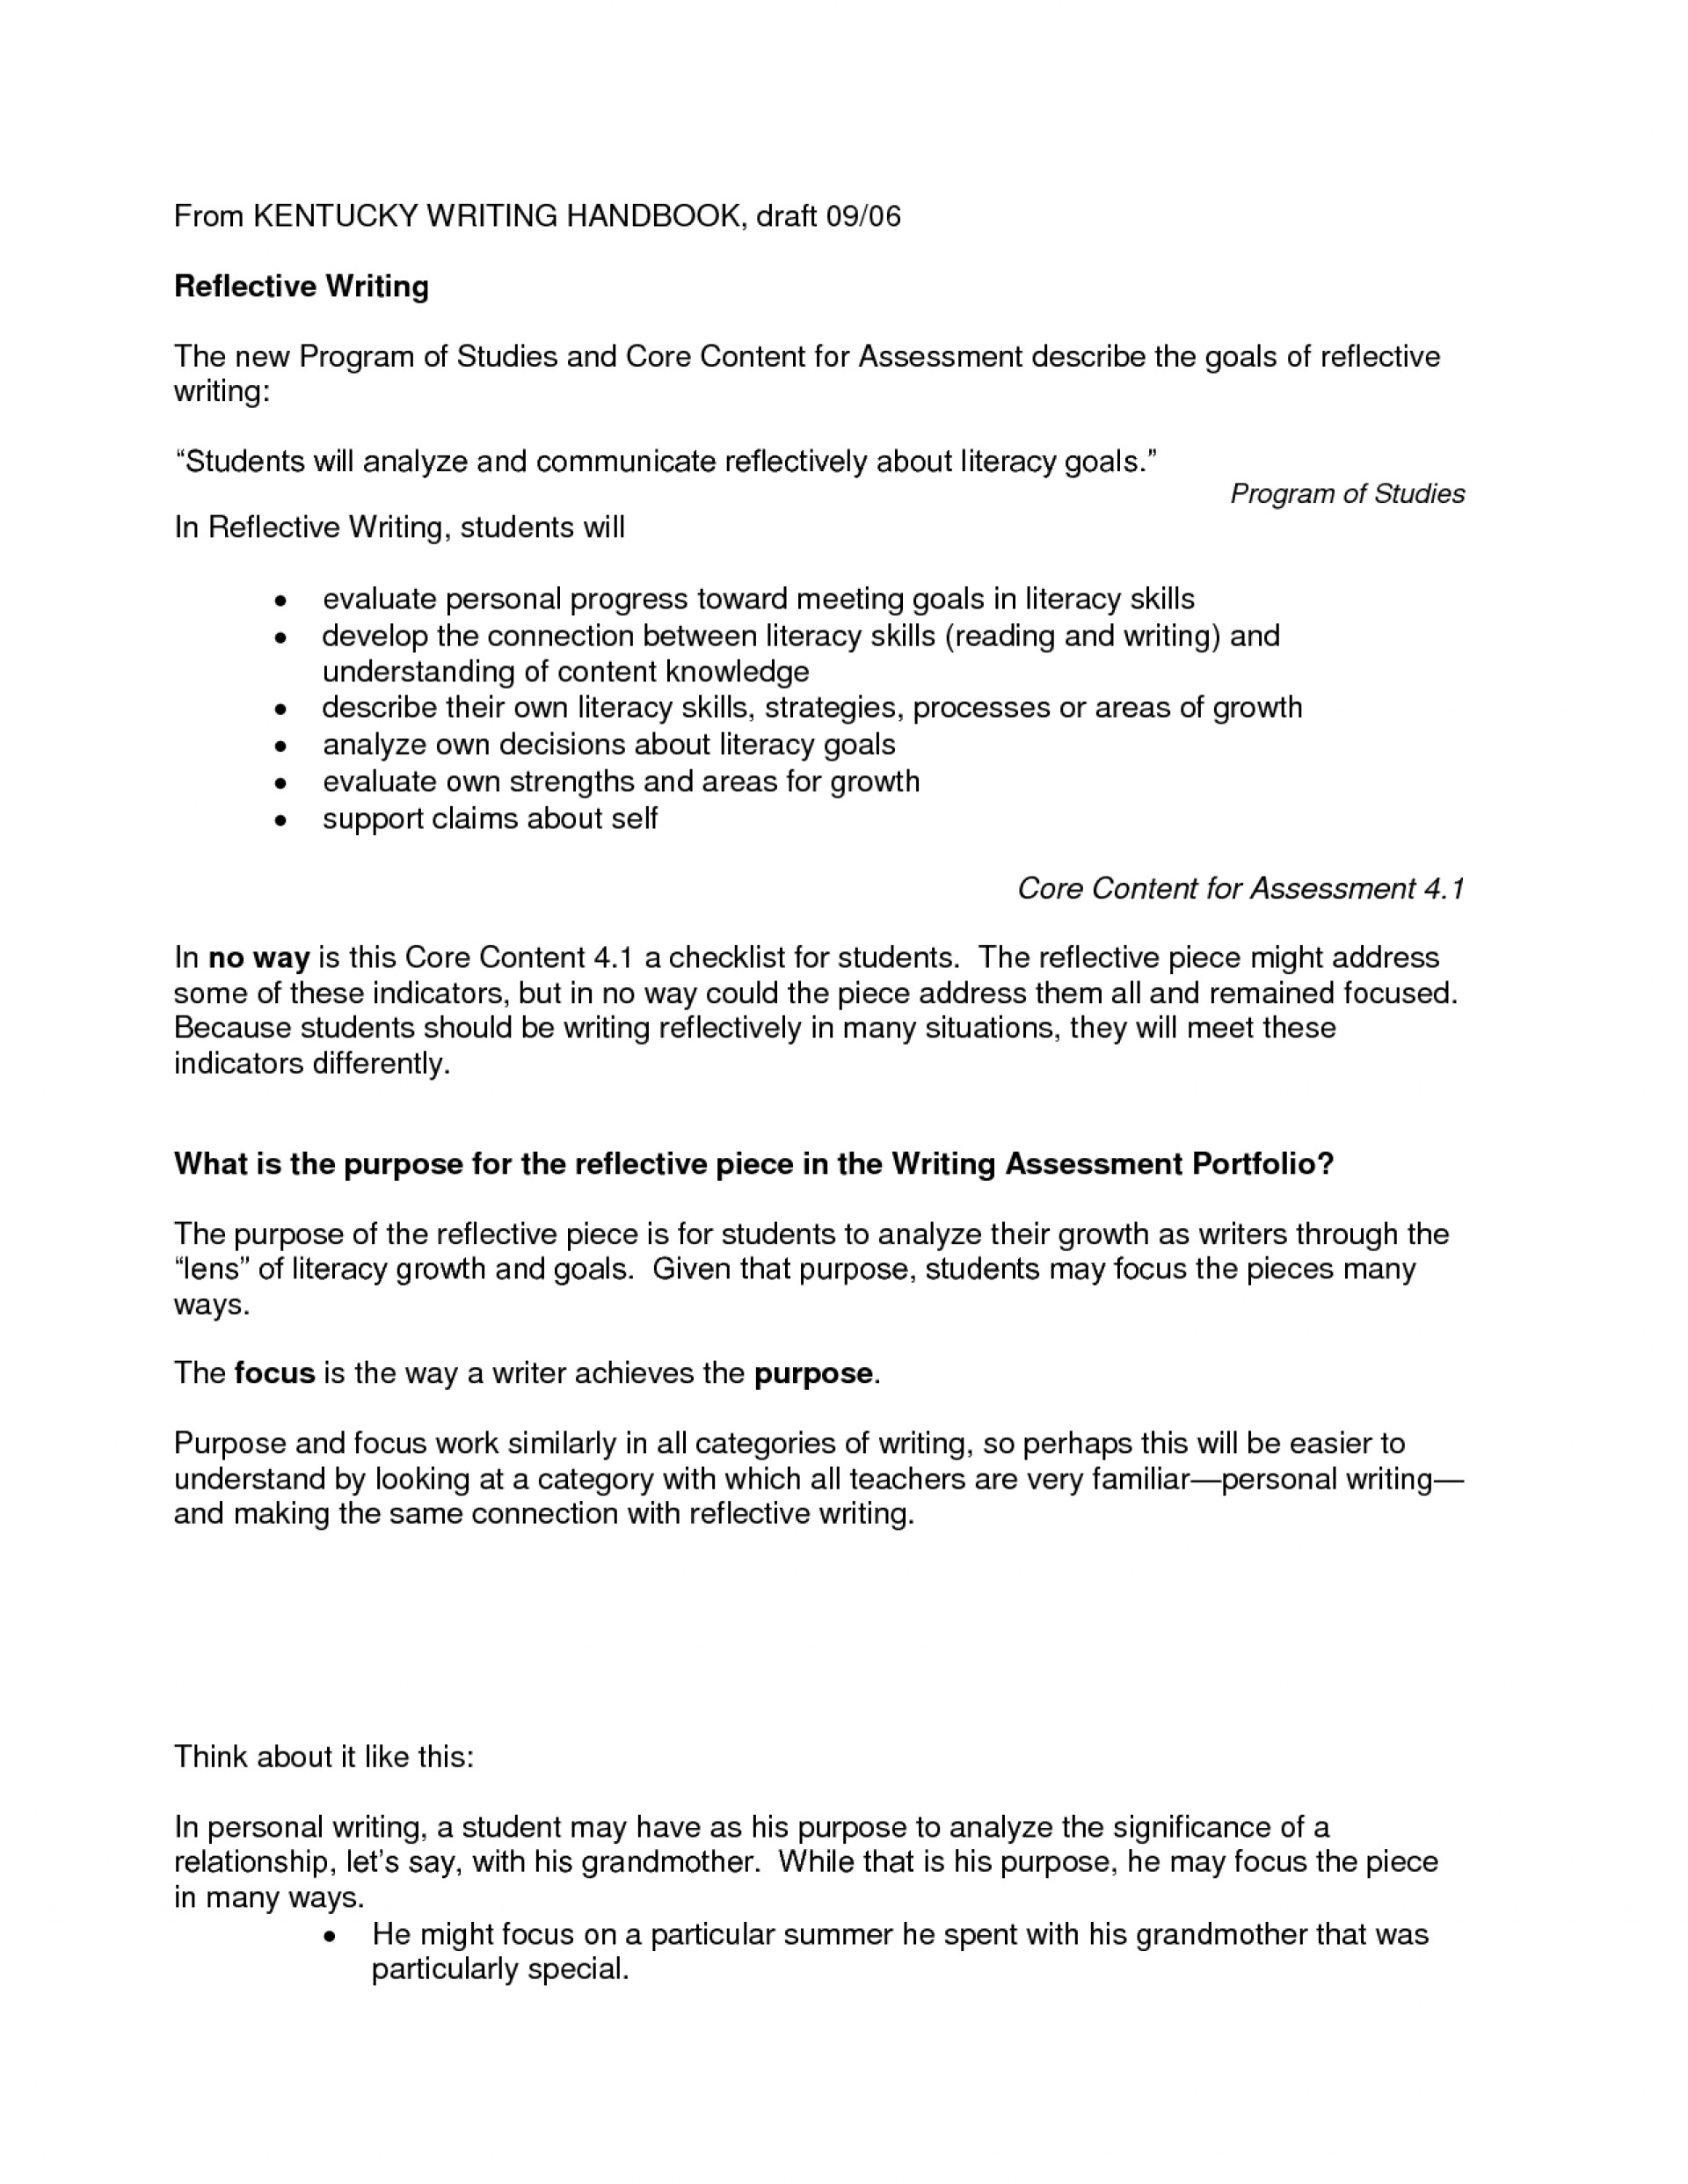 009 Reflective Essay Definition Example Nursing Writing 576466 Excellent Pdf Meaning In Telugu Personal Reflection 1920